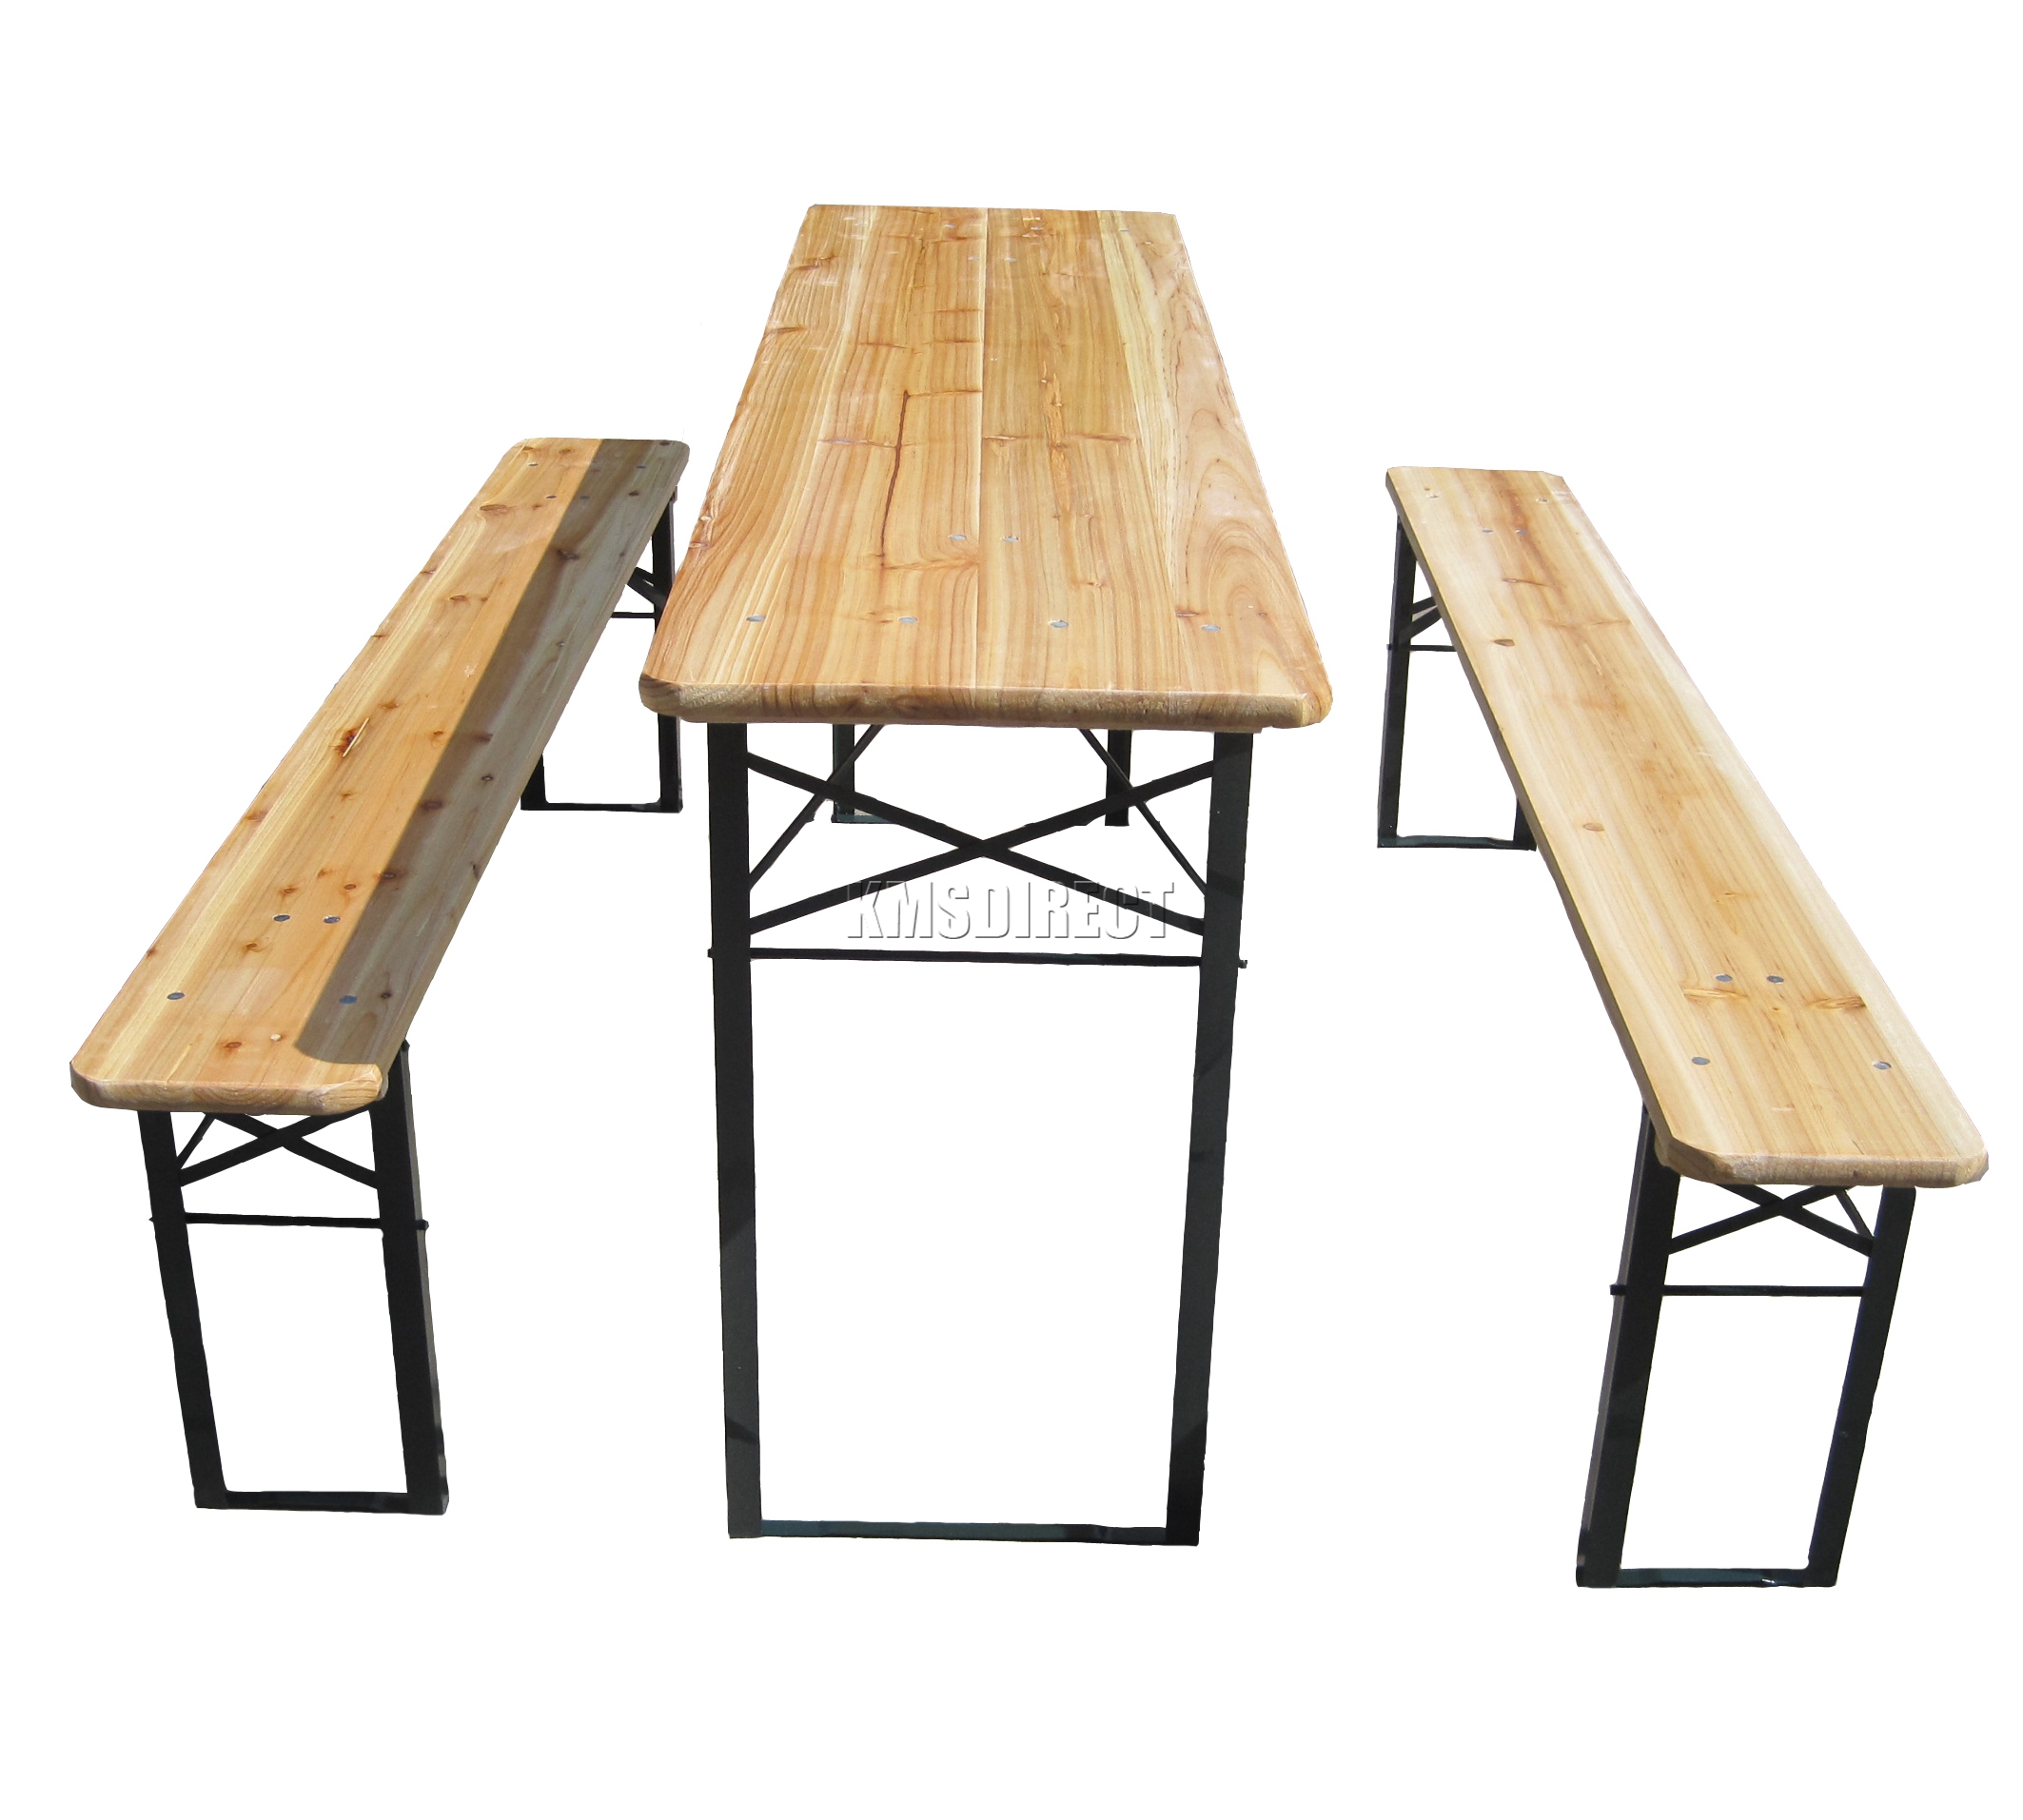 Wooden Folding Beer Table Bench Set Trestle Party Pub Garden Furniture Steel